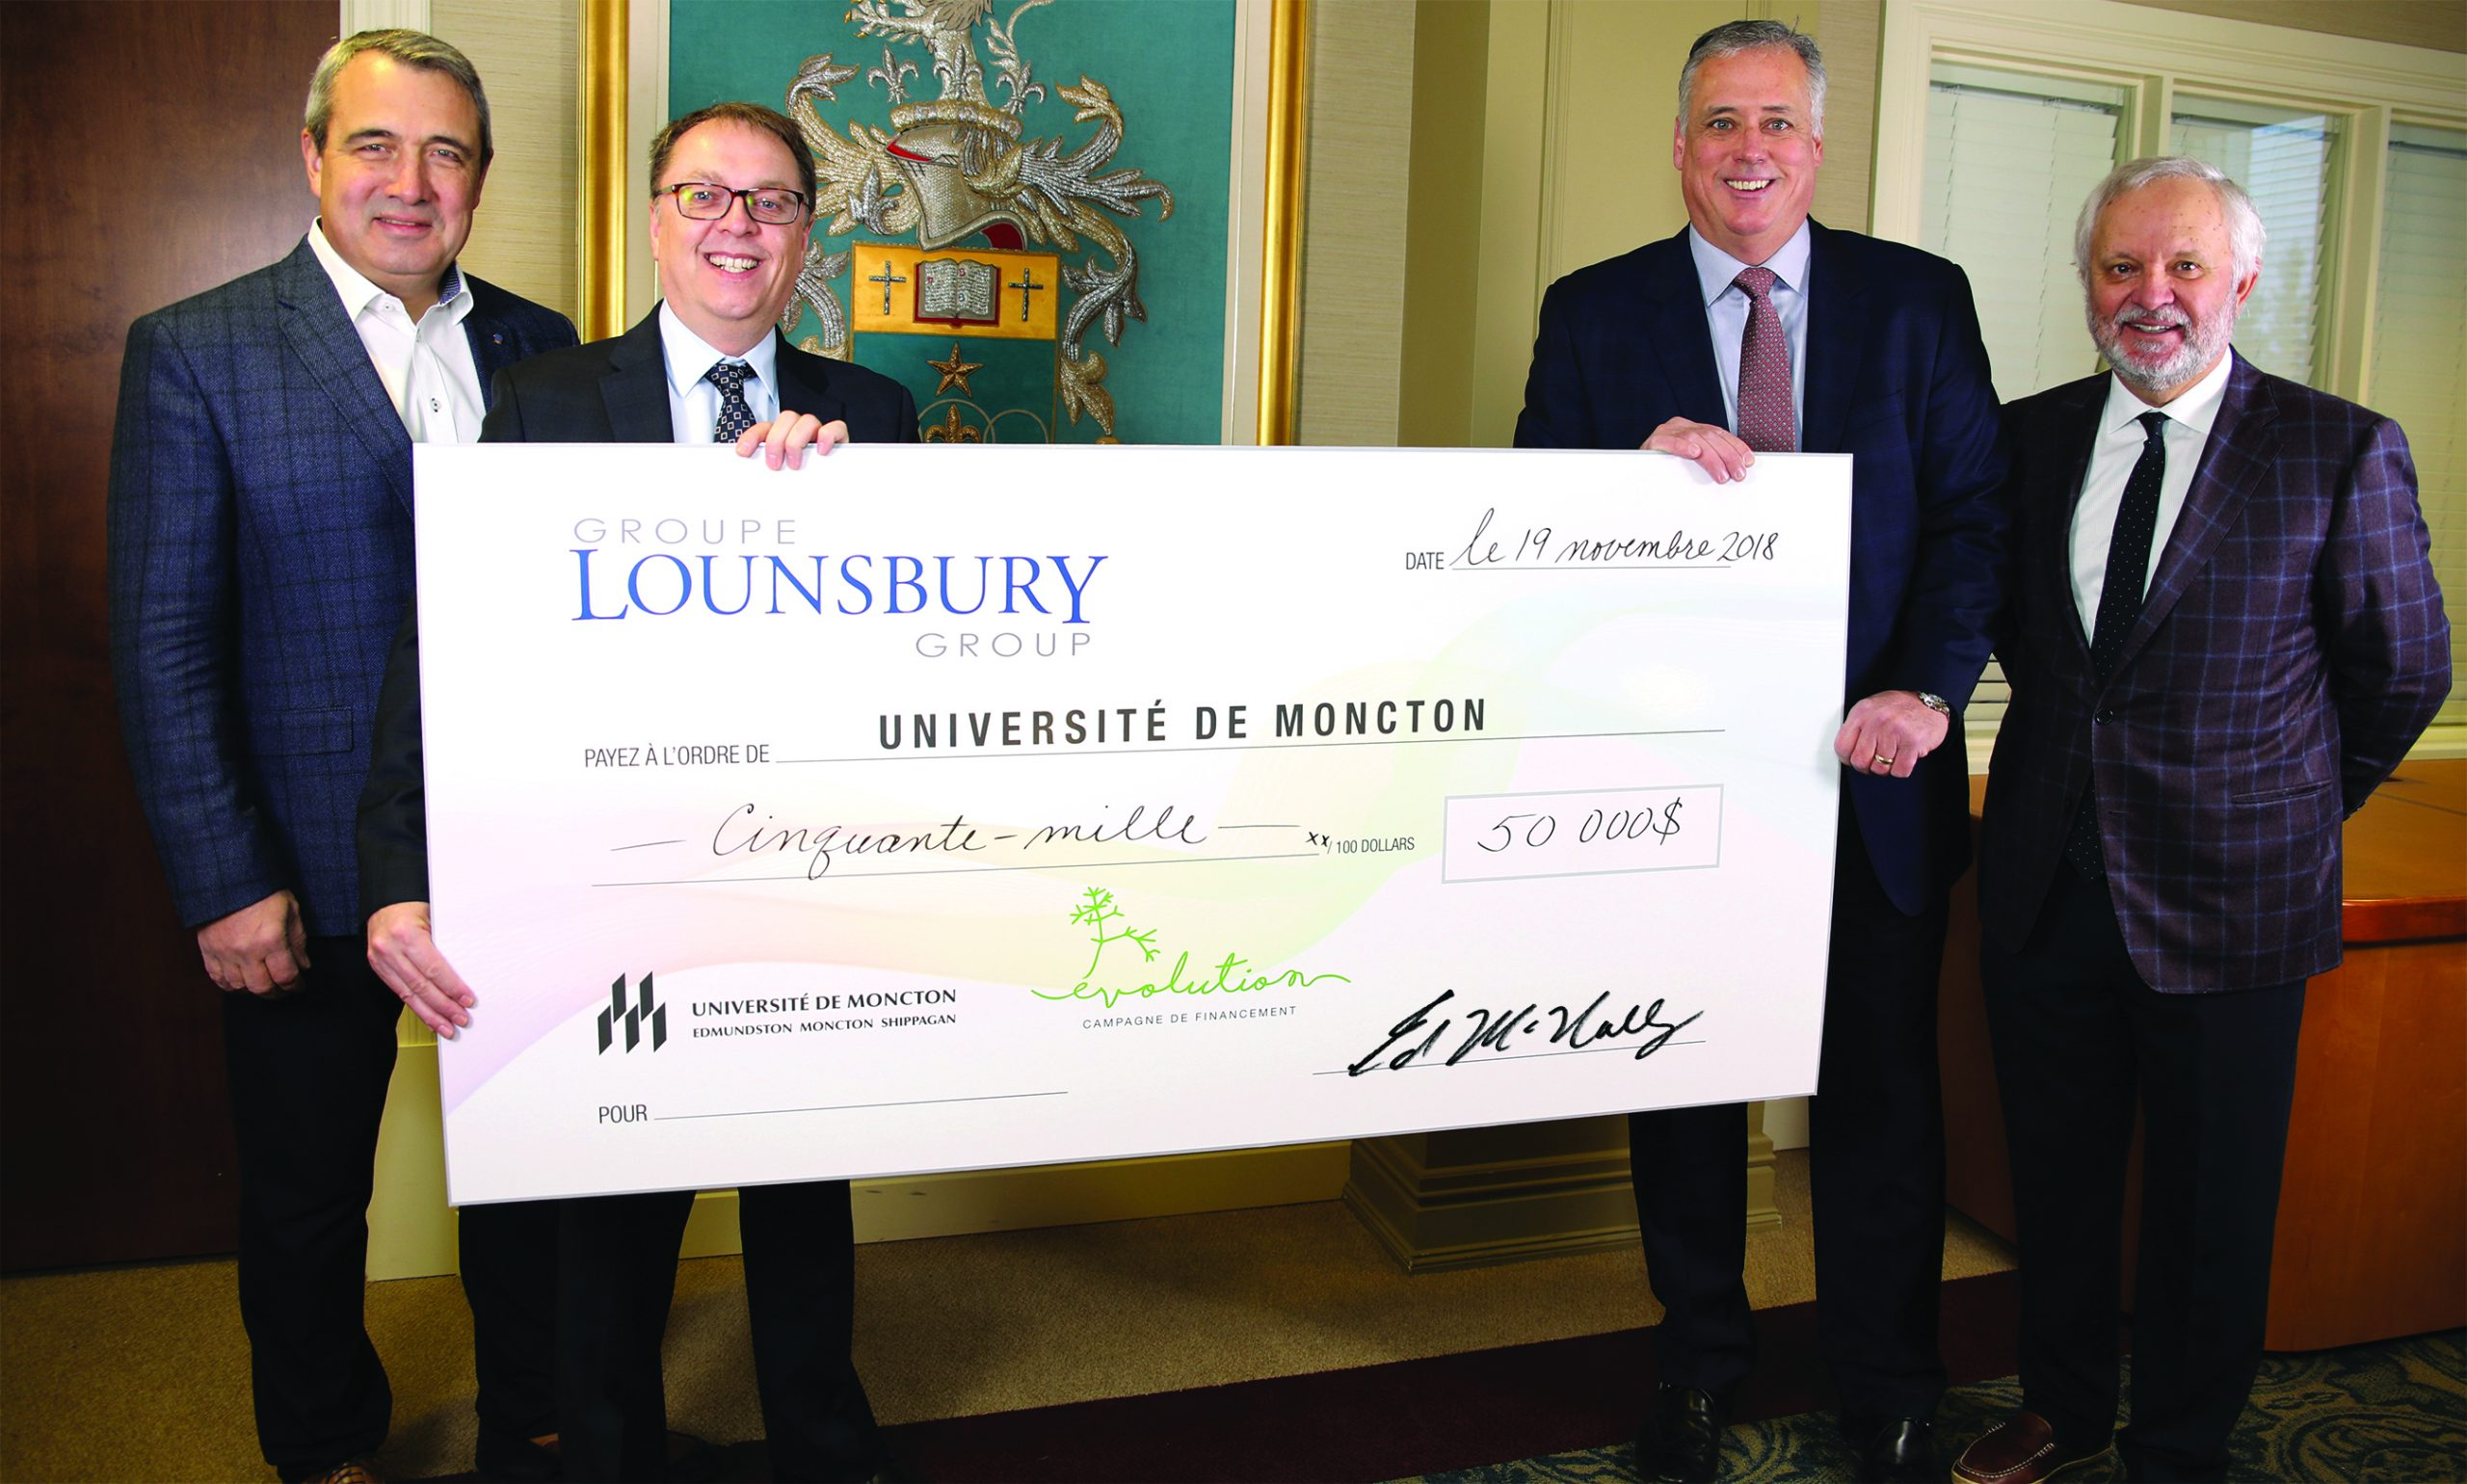 Groupe Lounsbury Group donating to Evolution Fundraising Campaign